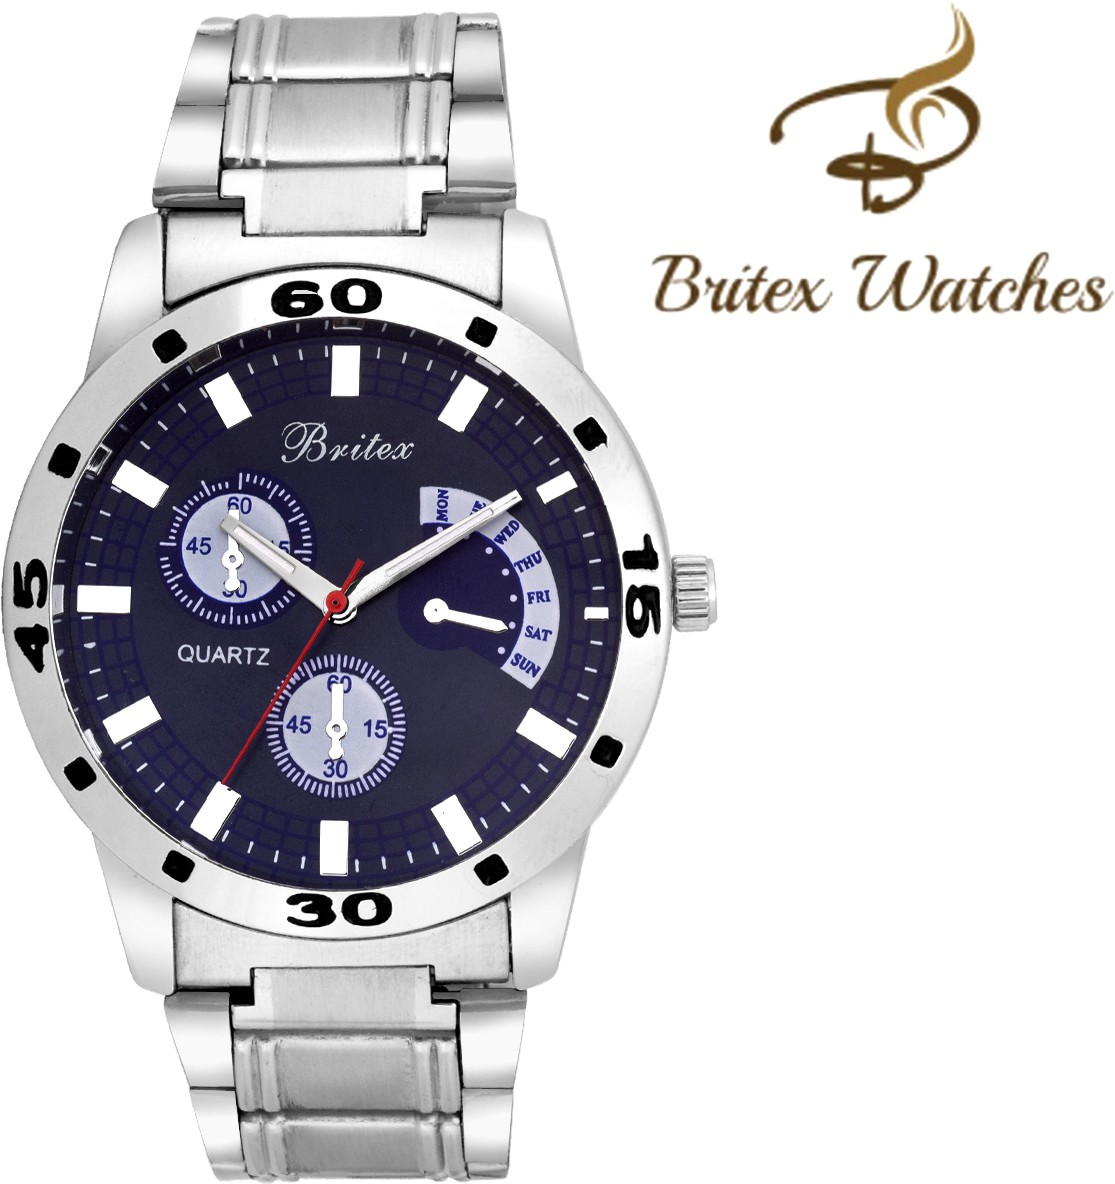 Deals - Delhi - Lois Caron... <br> Watches<br> Category - watches<br> Business - Flipkart.com